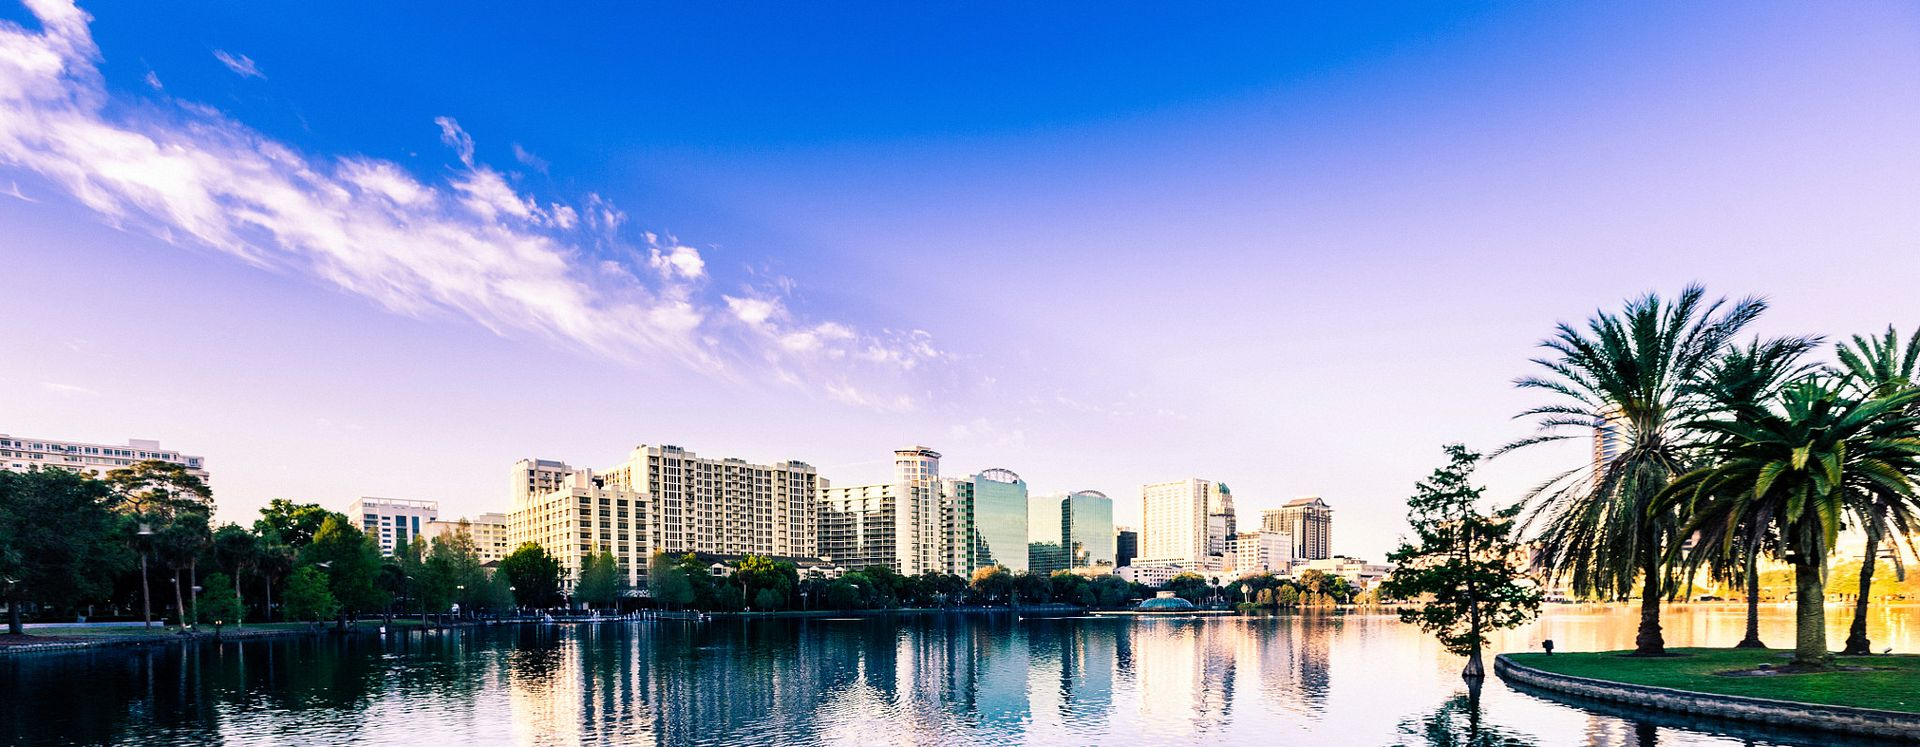 looking over lake Eola and the downtown orlando skyline